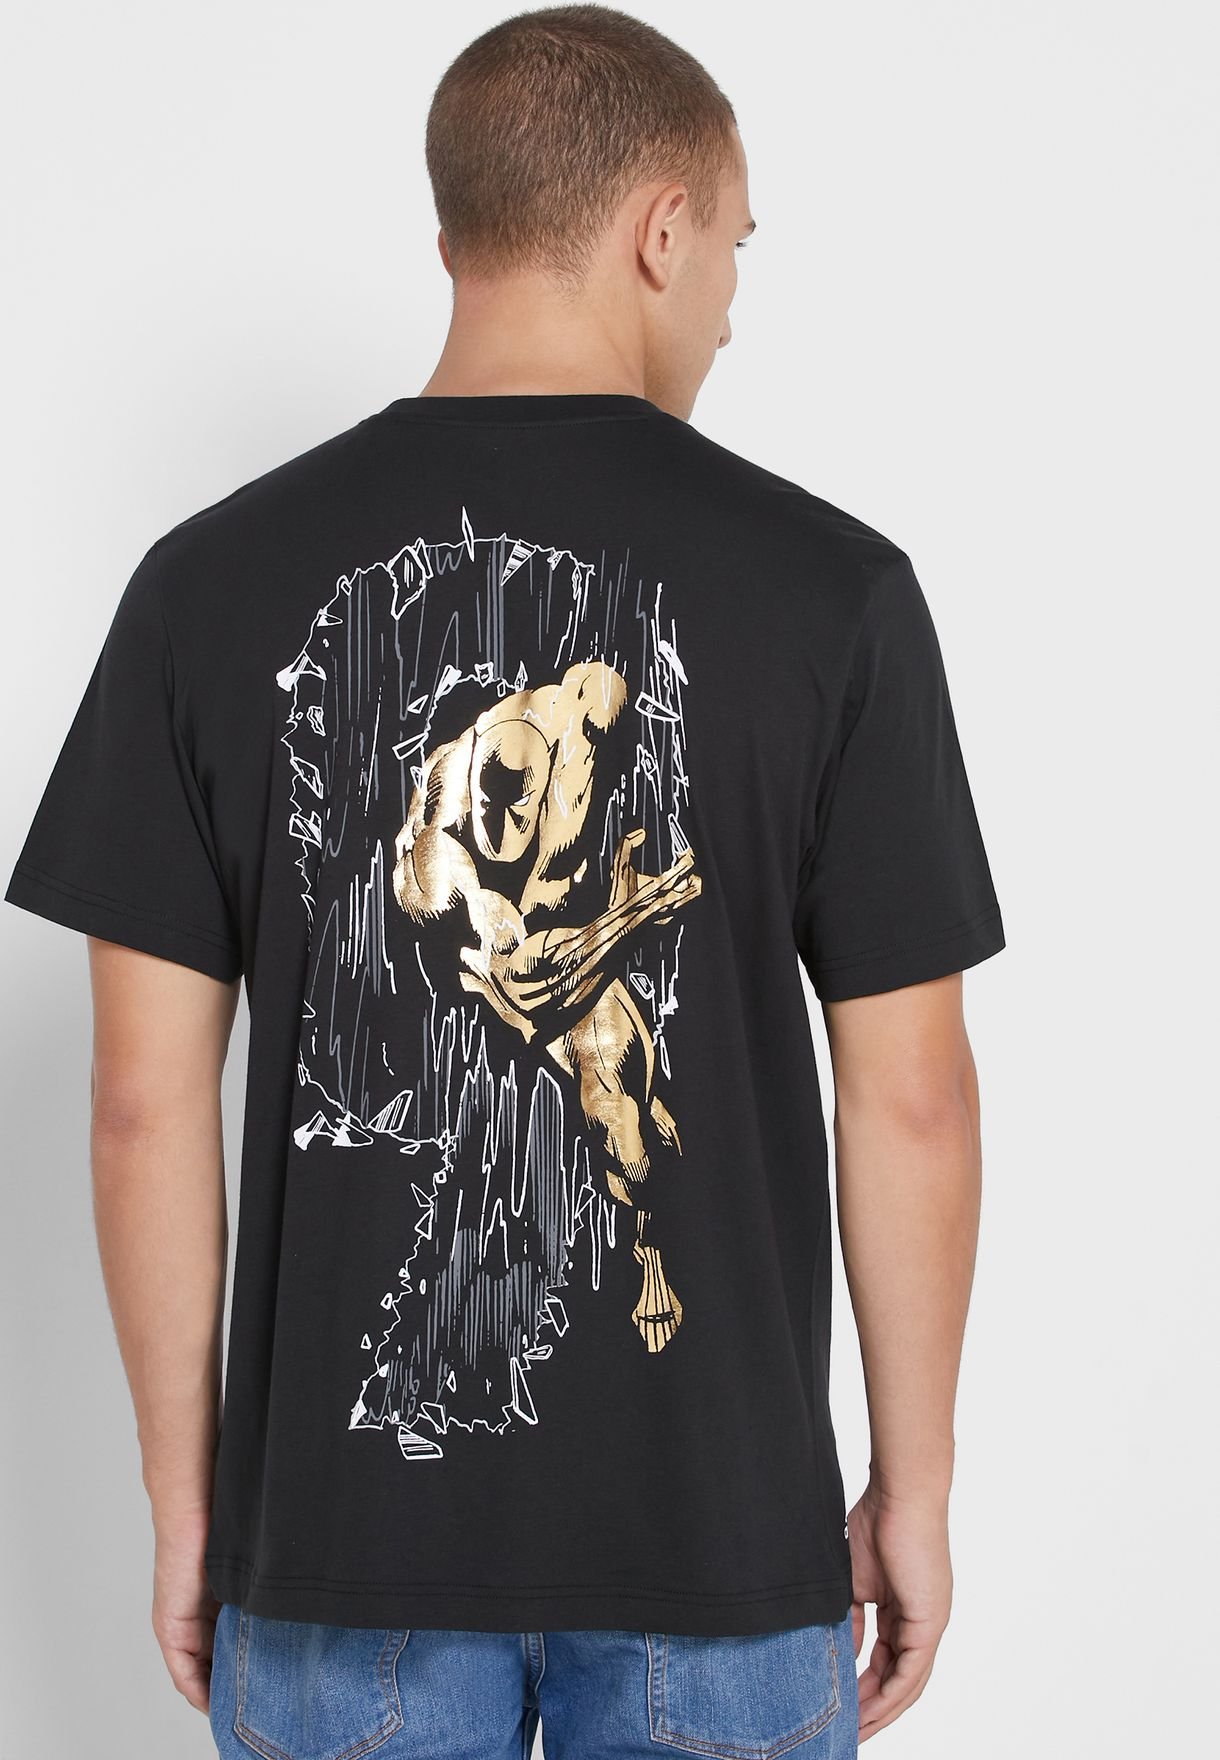 Marvel Black Panther T-Shirt